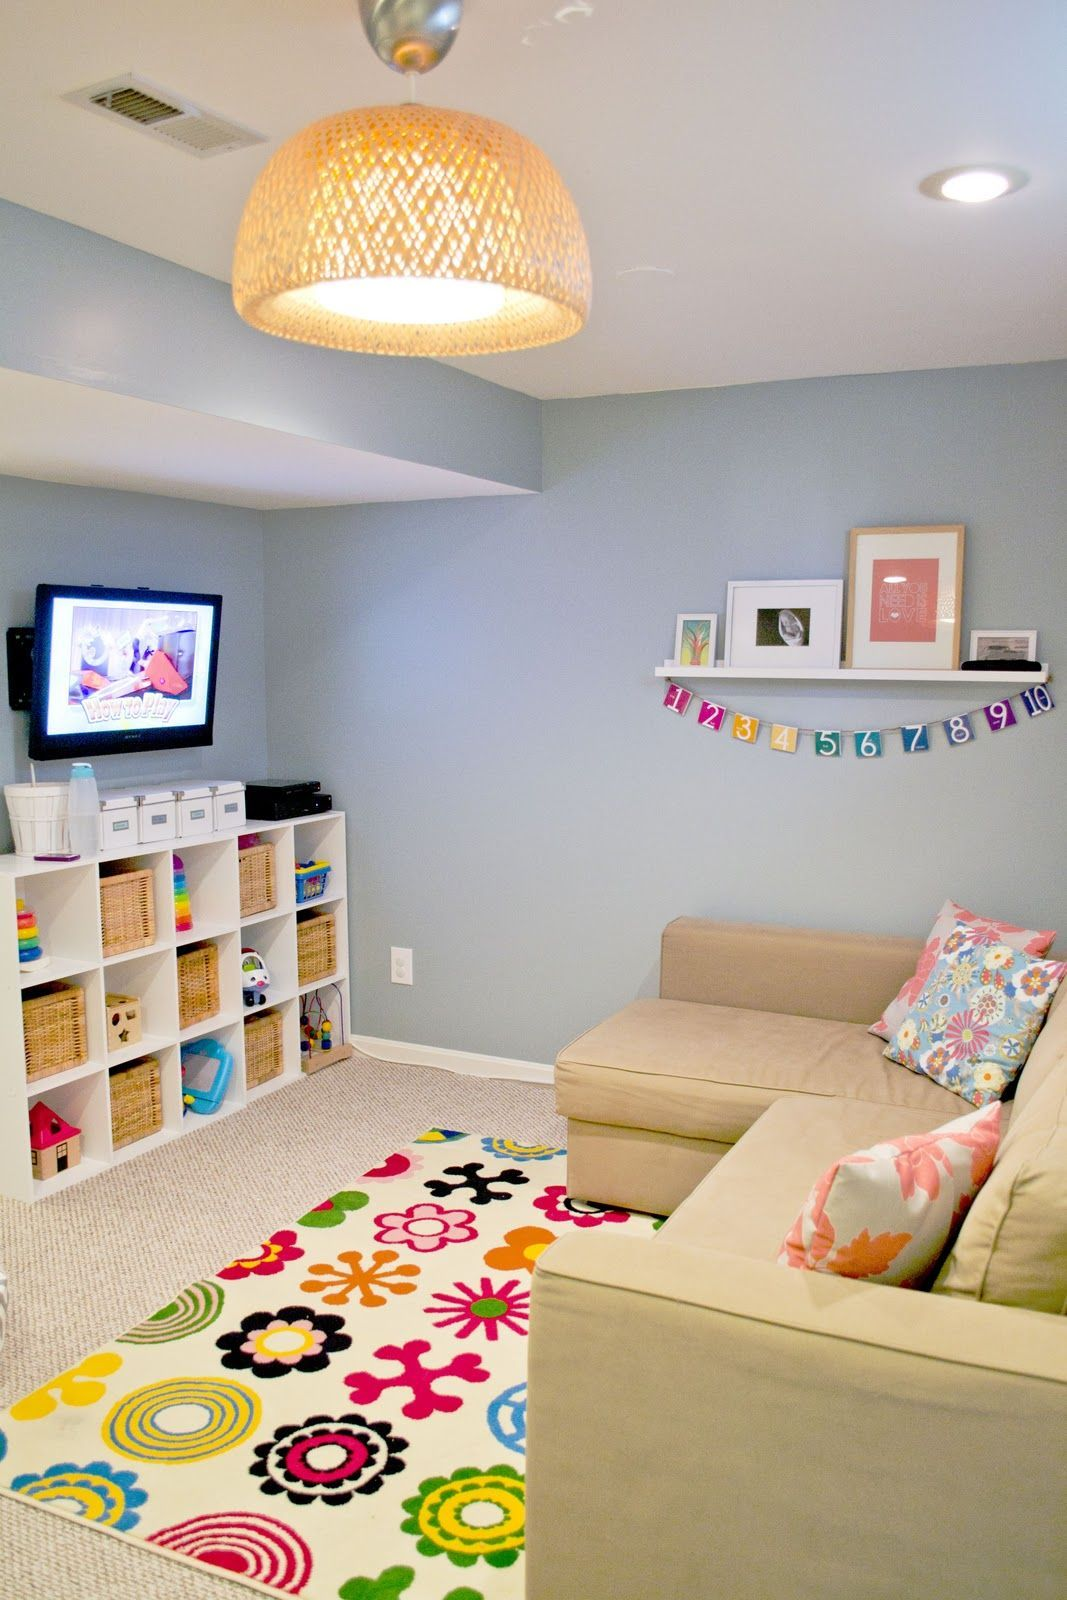 Kids Need To Have The Best Bedroom Design That S Why Today Web Ring You Some Lighting Ideas To Style It Www Lightin Family Room Design Playroom Design Home